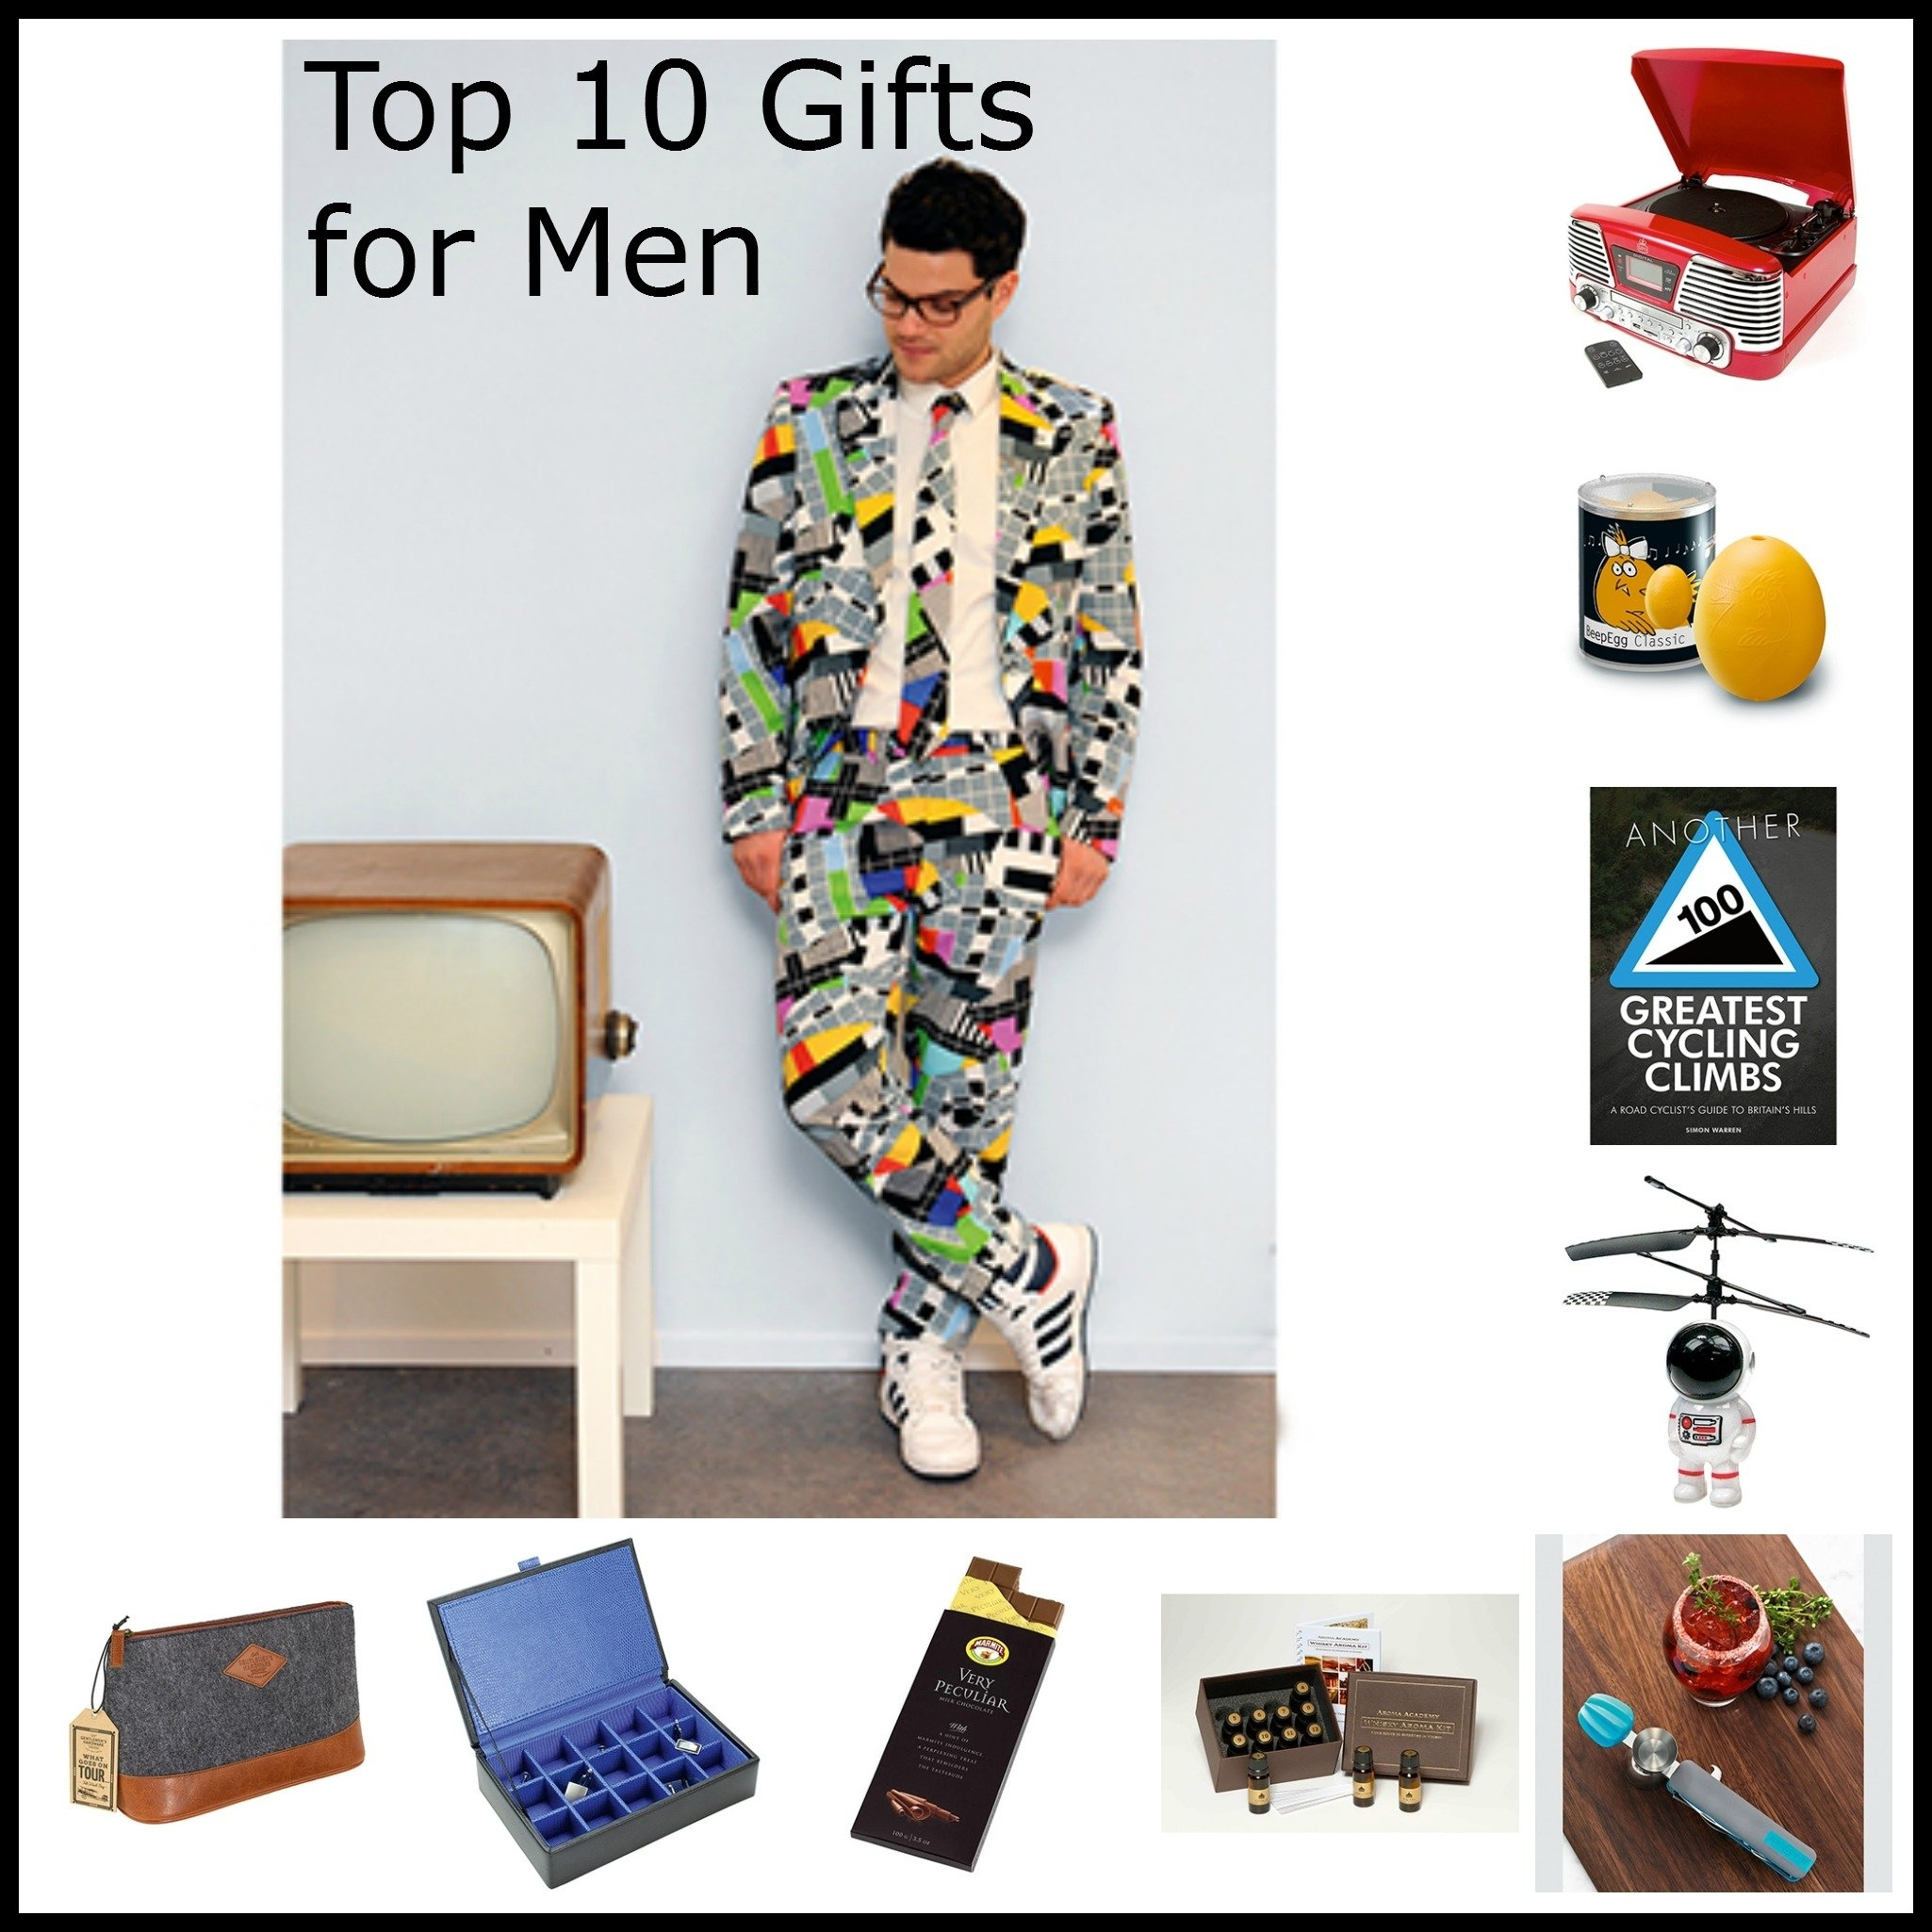 gifts design ideas: top ten gifts for men fun gifts for men, unique